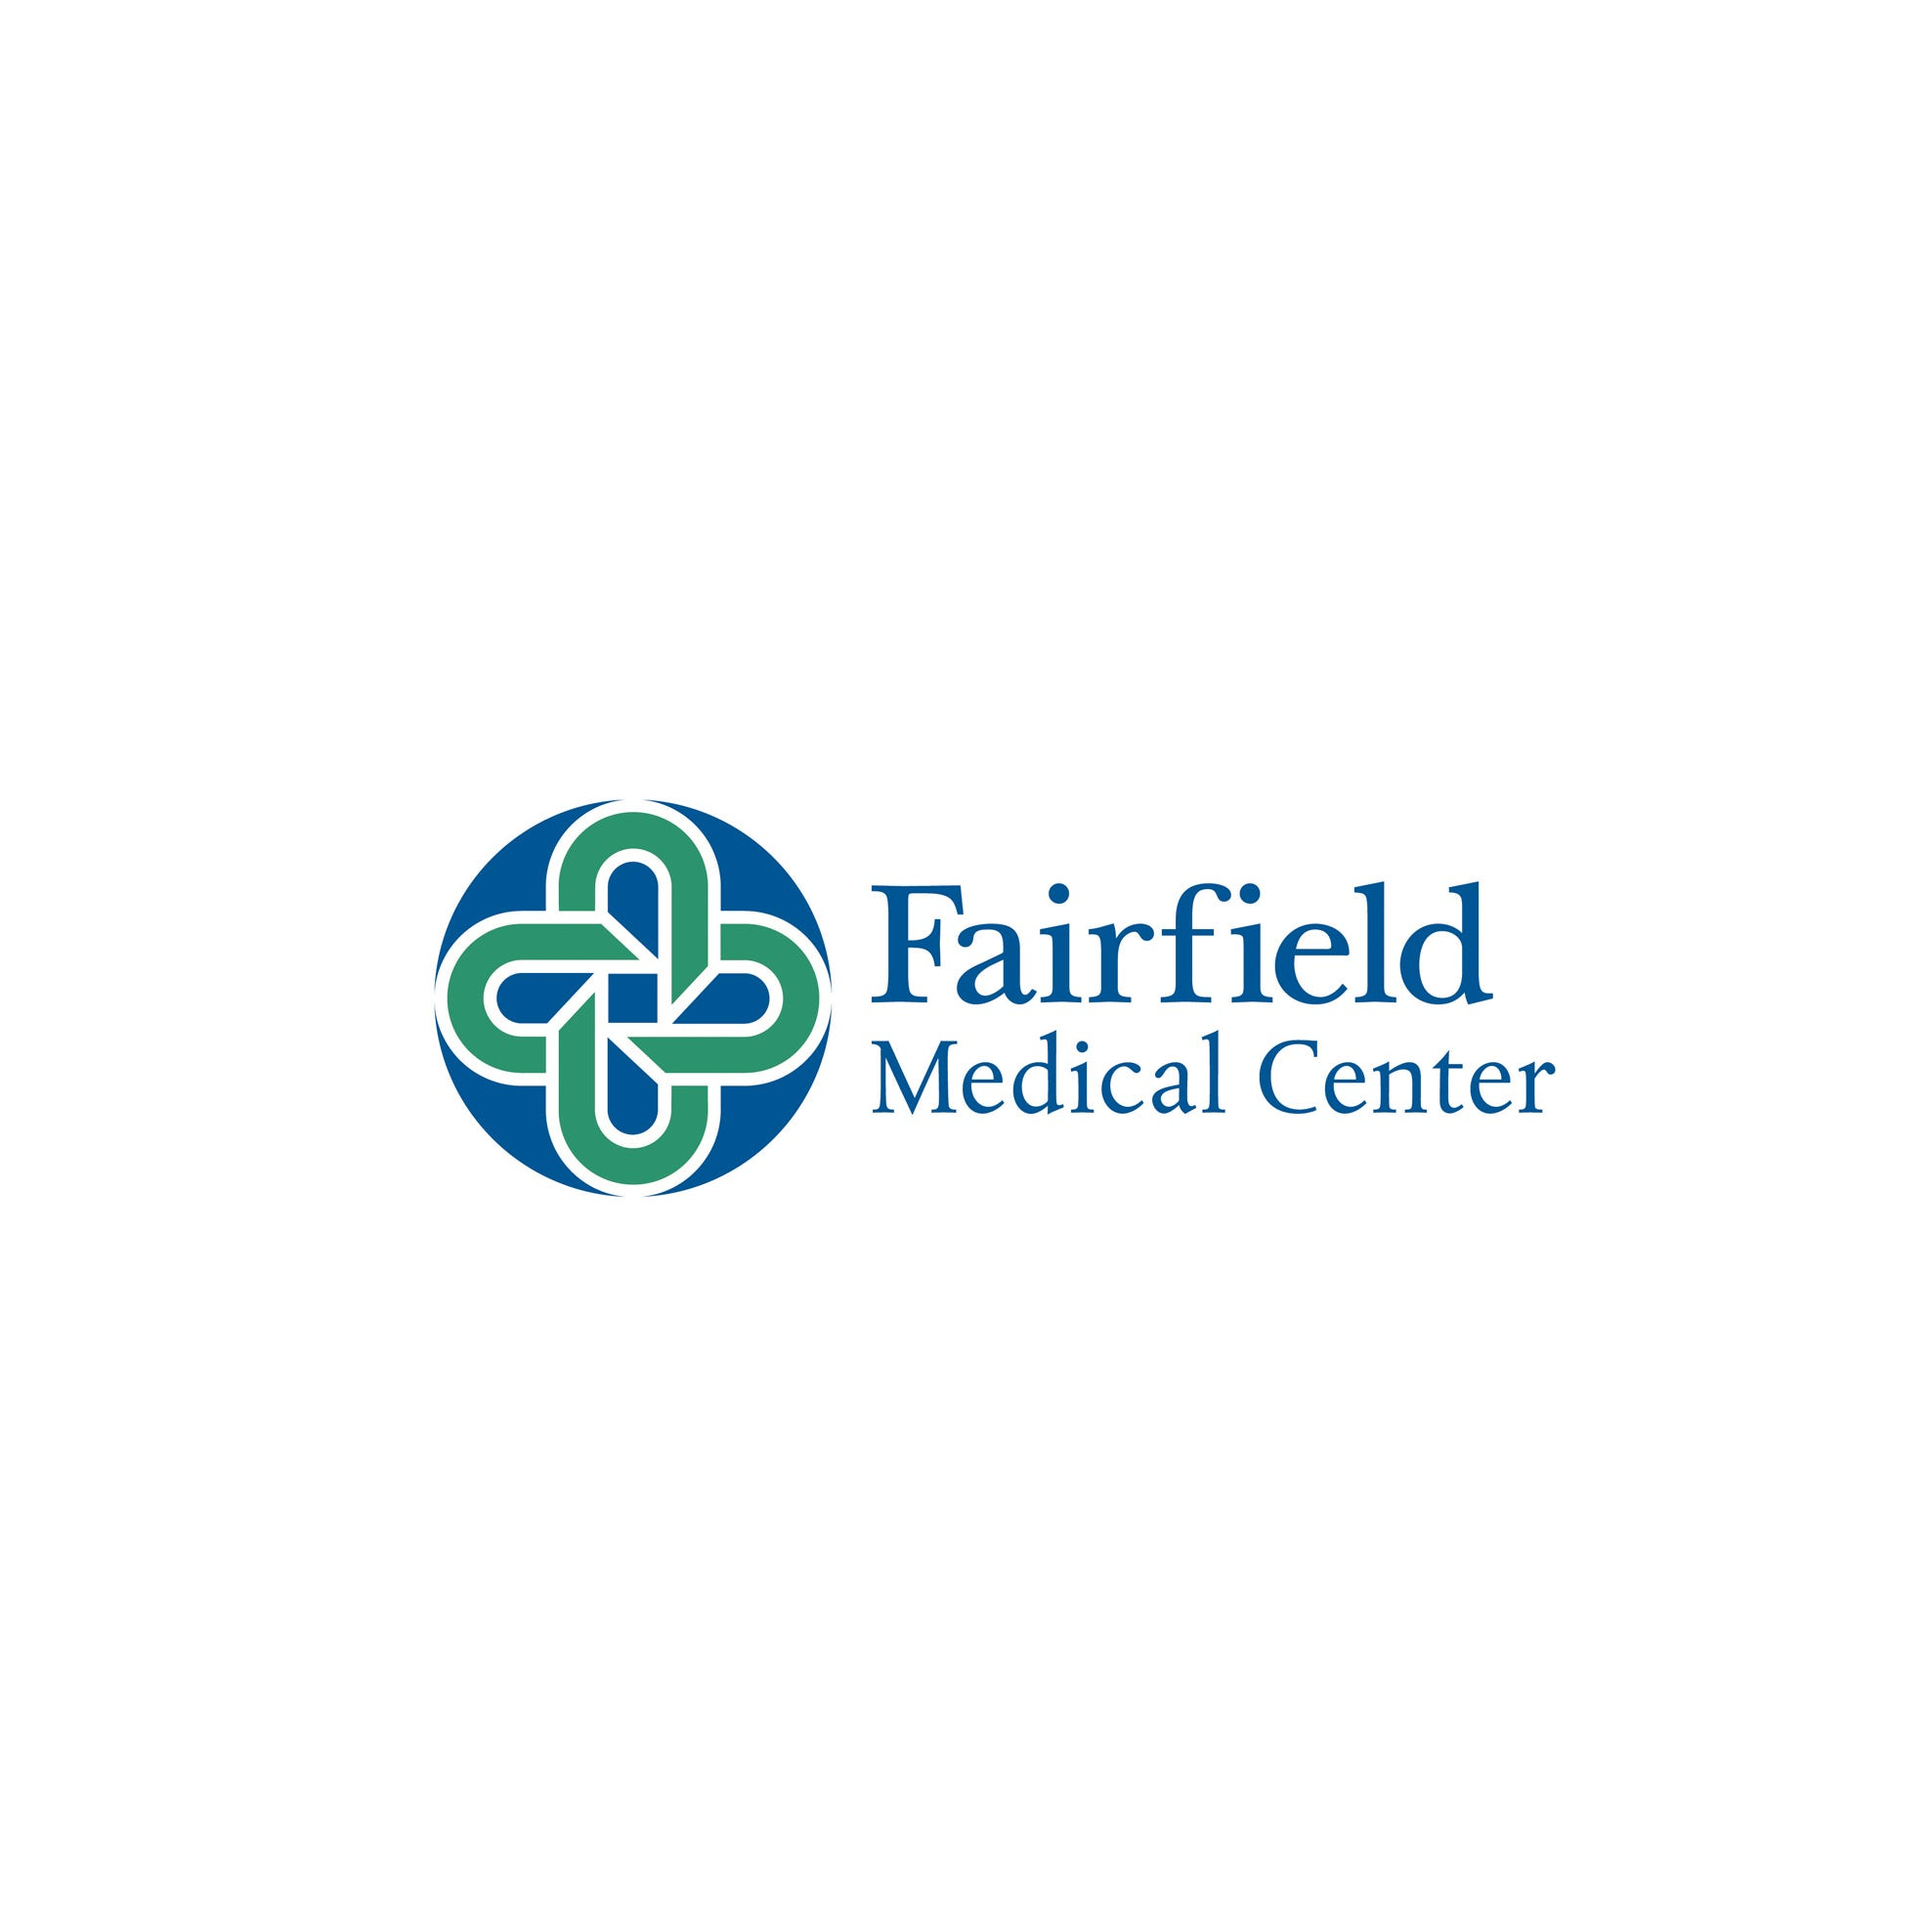 Fairfield Medical Center nearing completion of new River Valley Campus